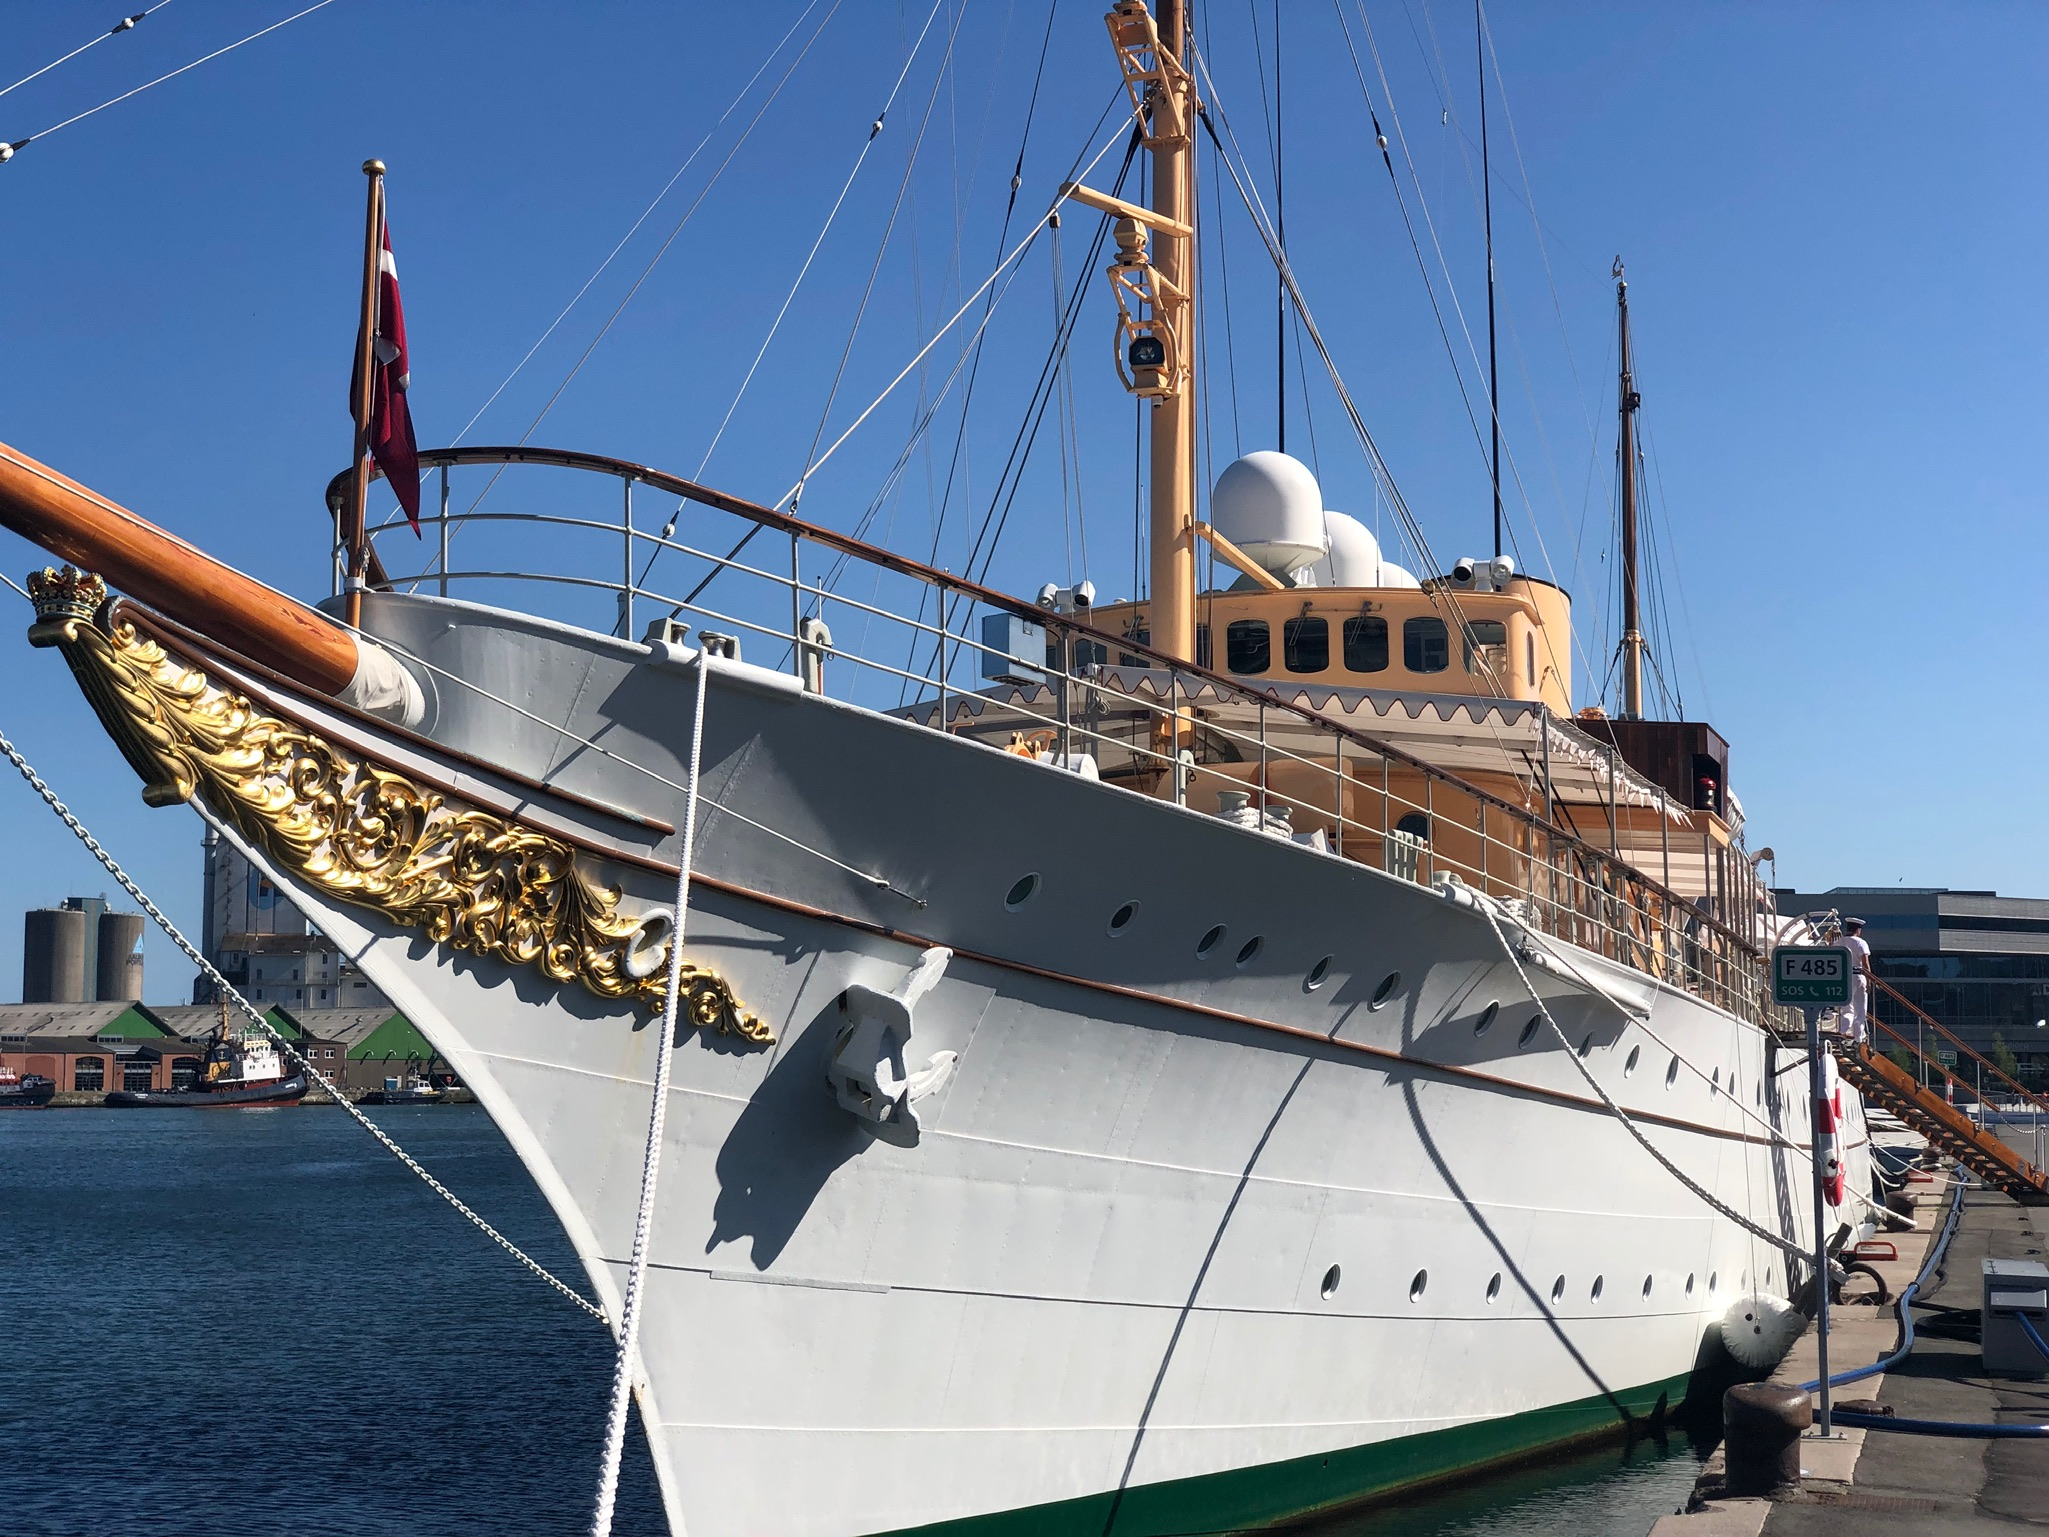 The Queen of Denmark was in Aarhus when we arrived. Apparently she traveled by boat, as her royal yacht was docked in the harbor. We hung around looking pitiful, but she never invited us on board.